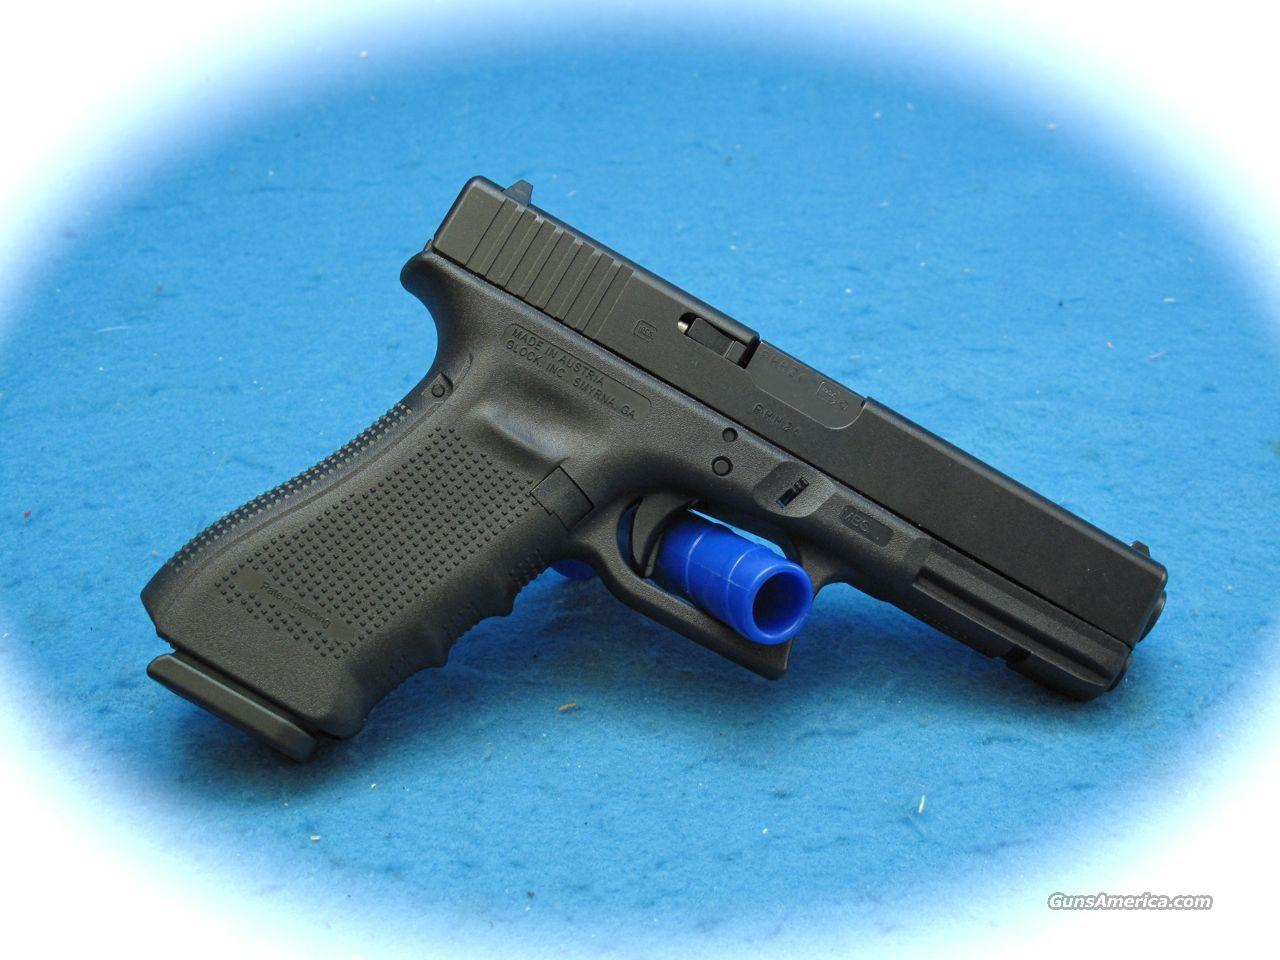 Glock Model 17 4th Generation 9mm **NEW**  Guns > Pistols > Glock Pistols > 17